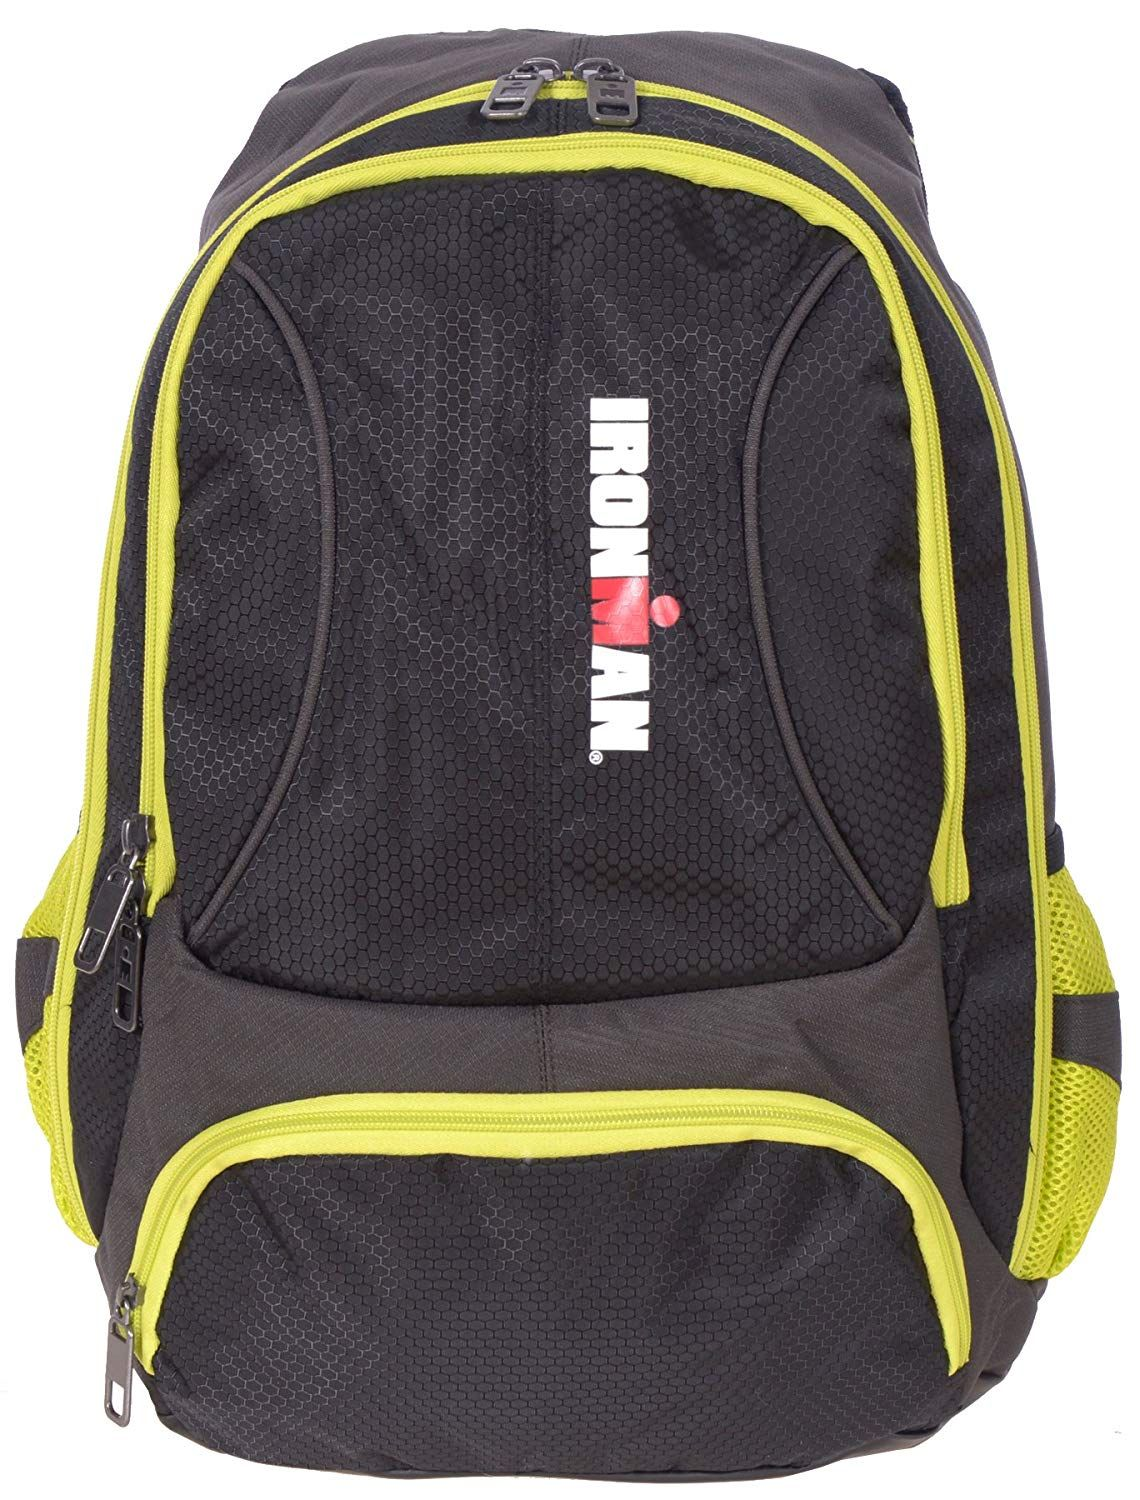 Ironman Deluxe Padded Backpack With Reflective Details